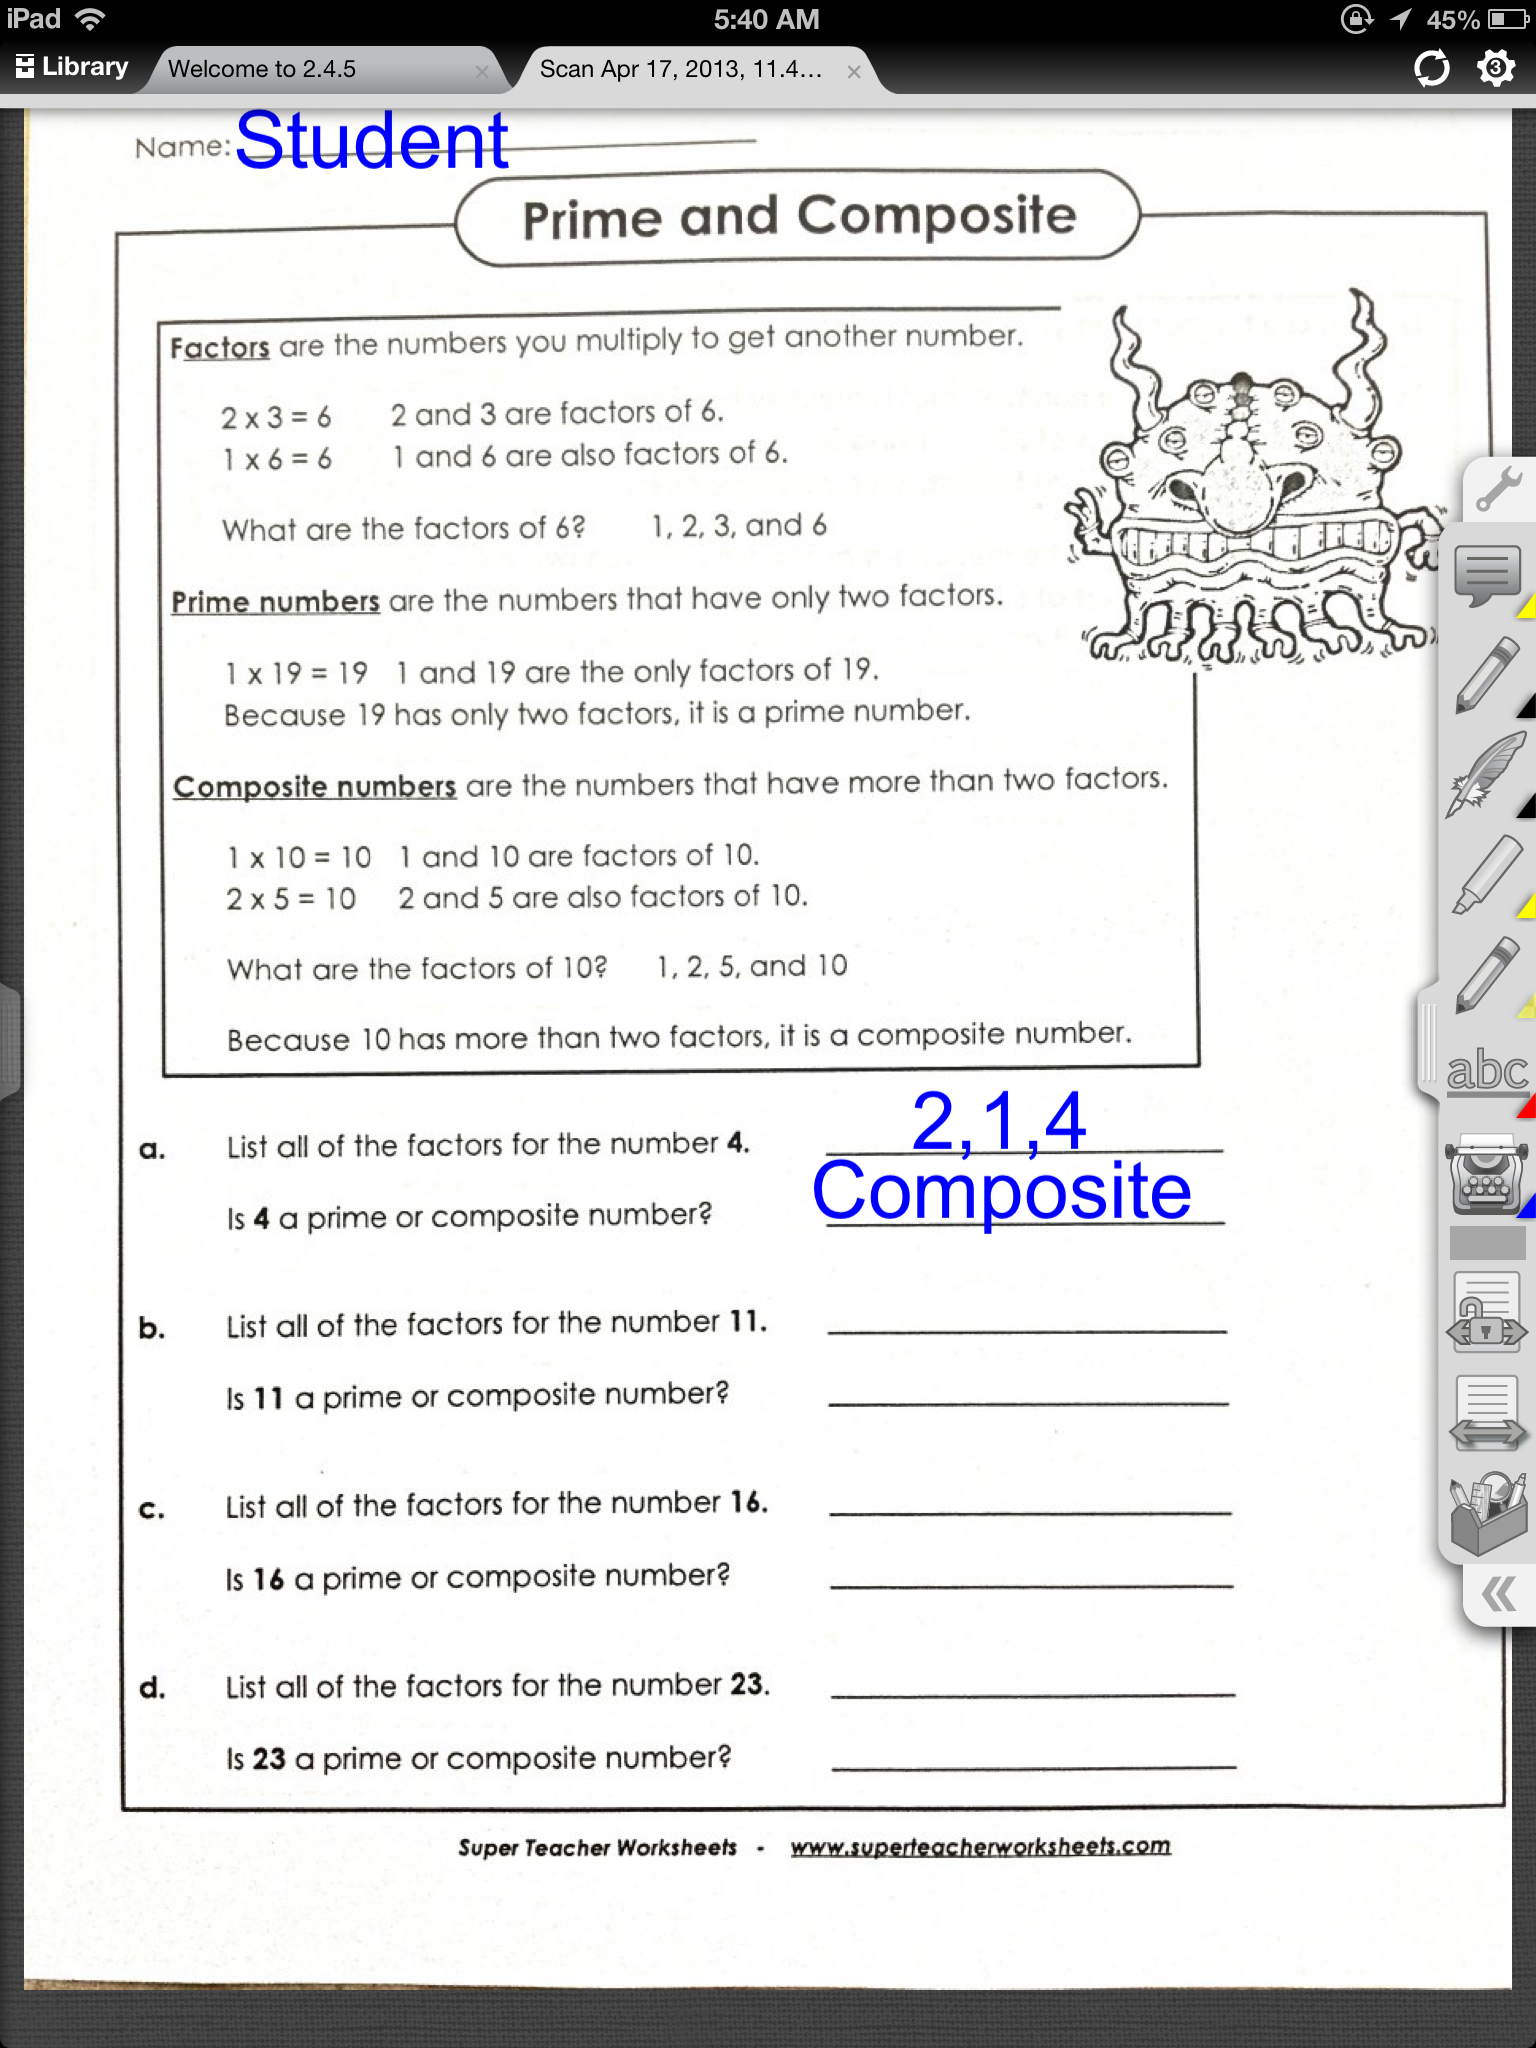 Printables Dysgraphia Worksheets iannotate app on sale for teacher appreciation week ots with pic1